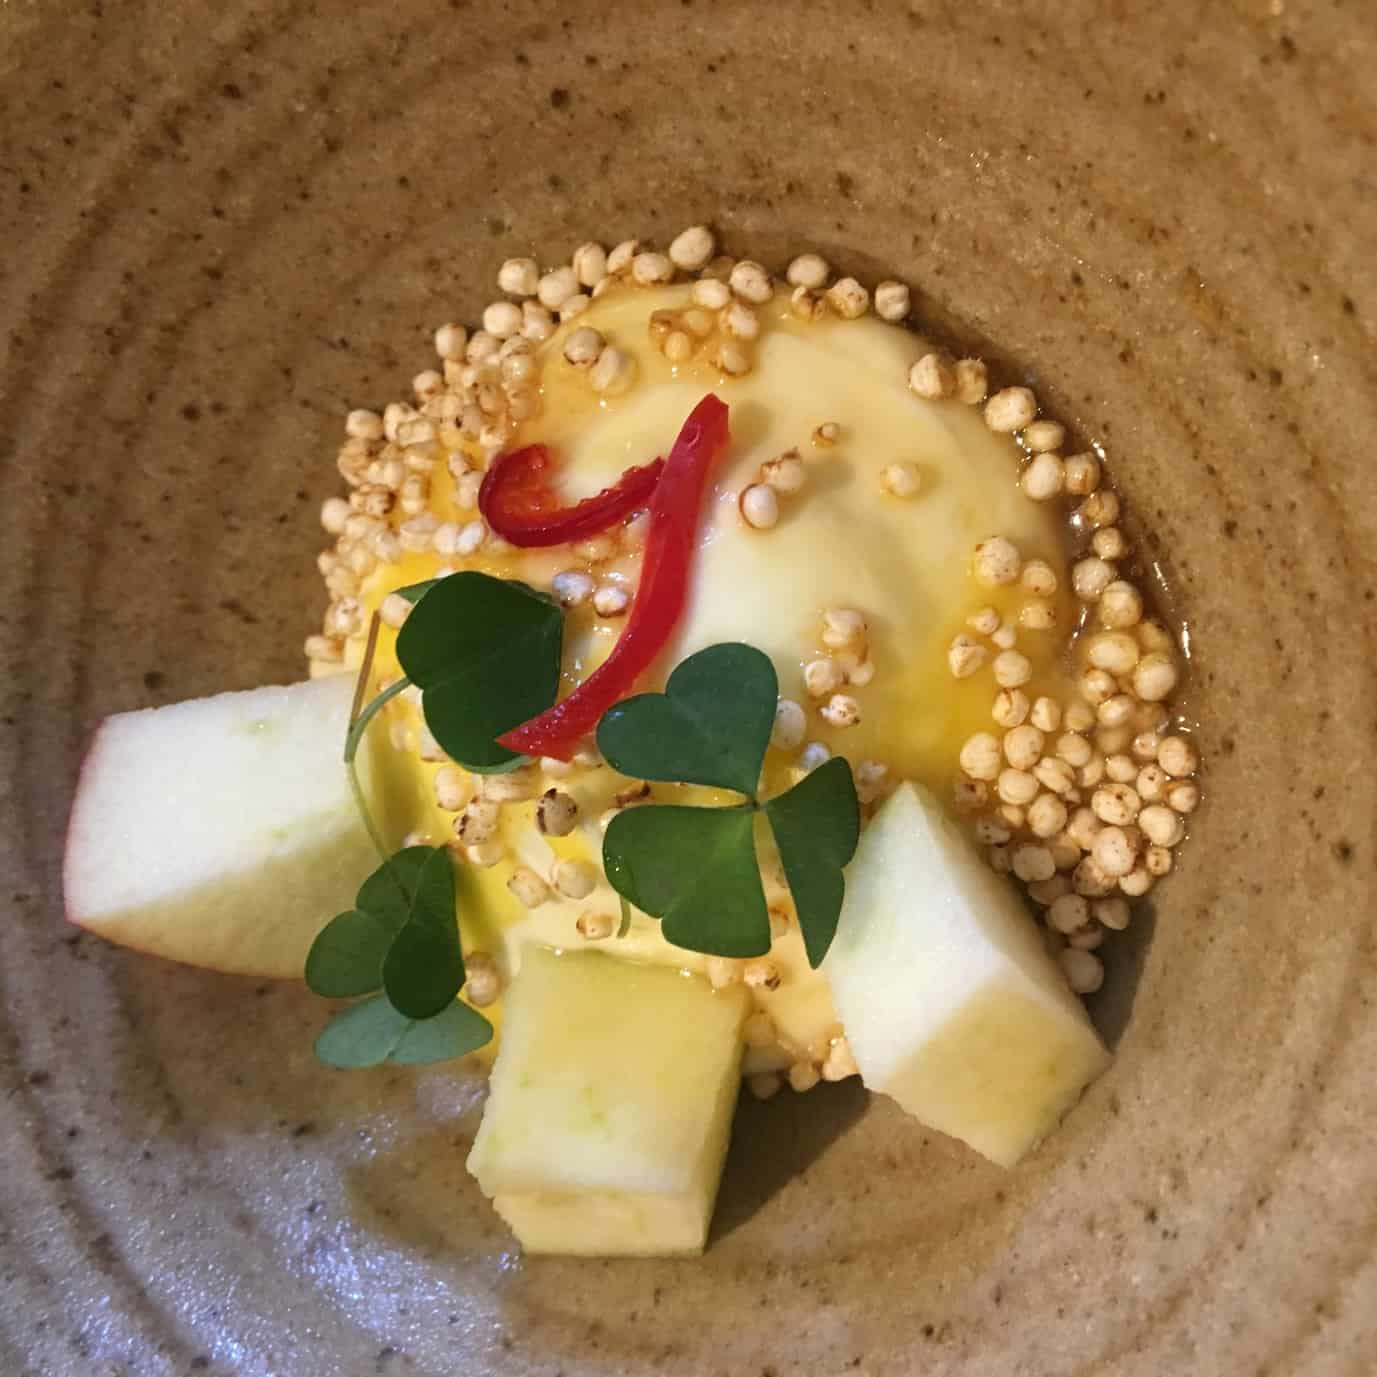 Greek yogurt, lemon curd, fresh apple compote, chilli syrup and toasted puffed quinoa